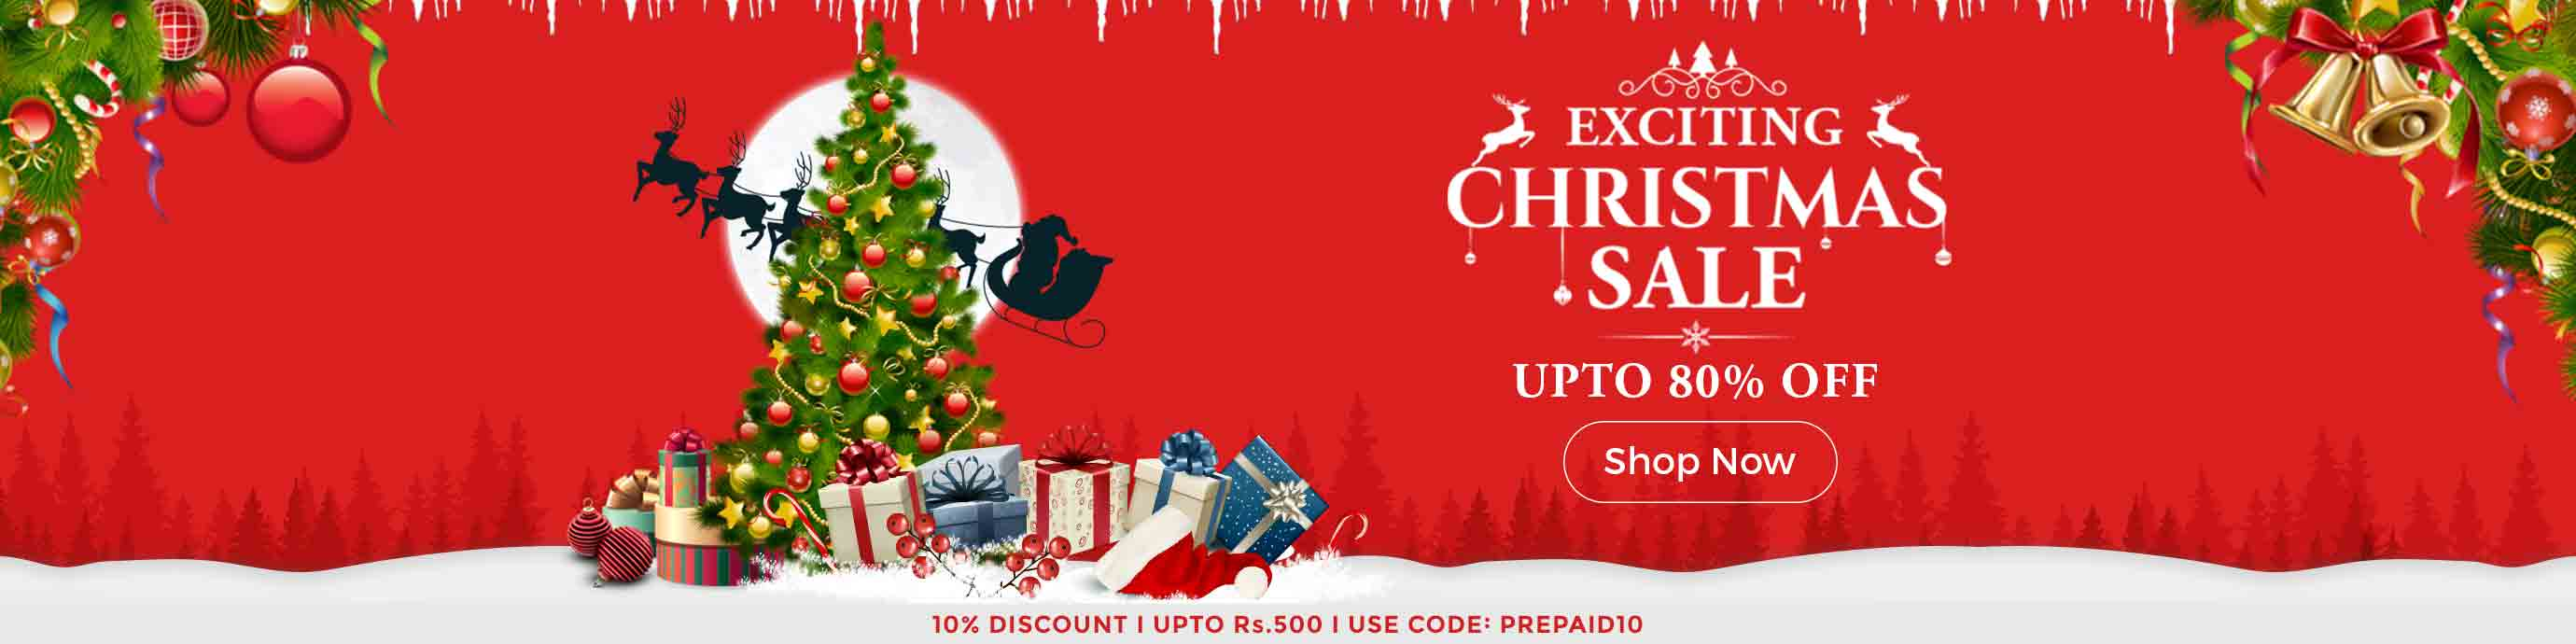 ShopClues Exciting Christmas Sale Begins  Upto 80% Off – Buy Online at Shopclues.com